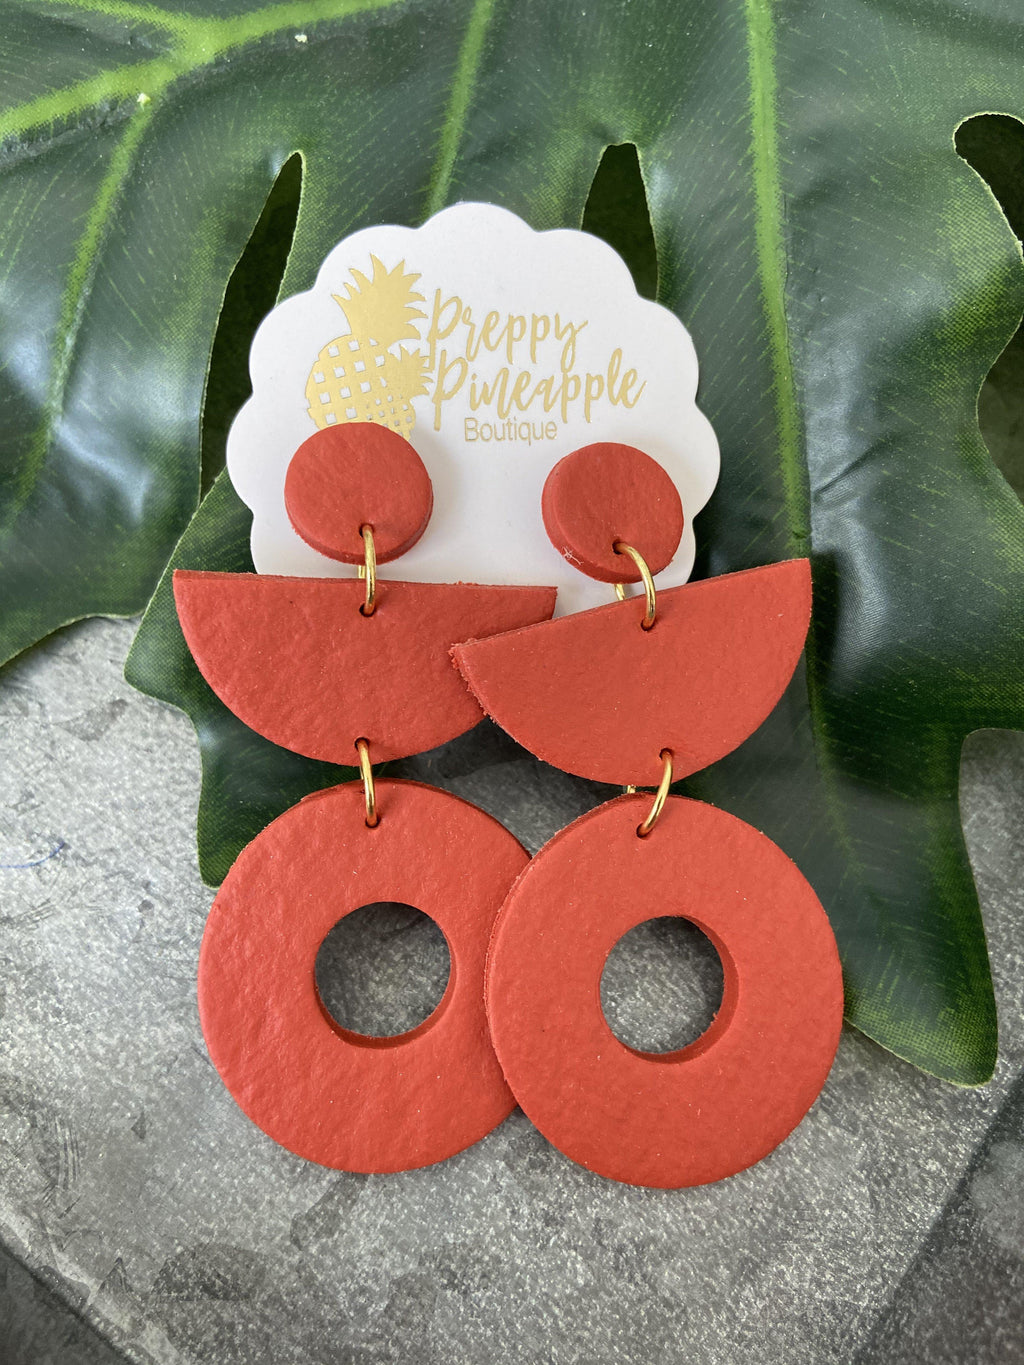 Three Tier Open Circle Earrings - Preppy Pineapple